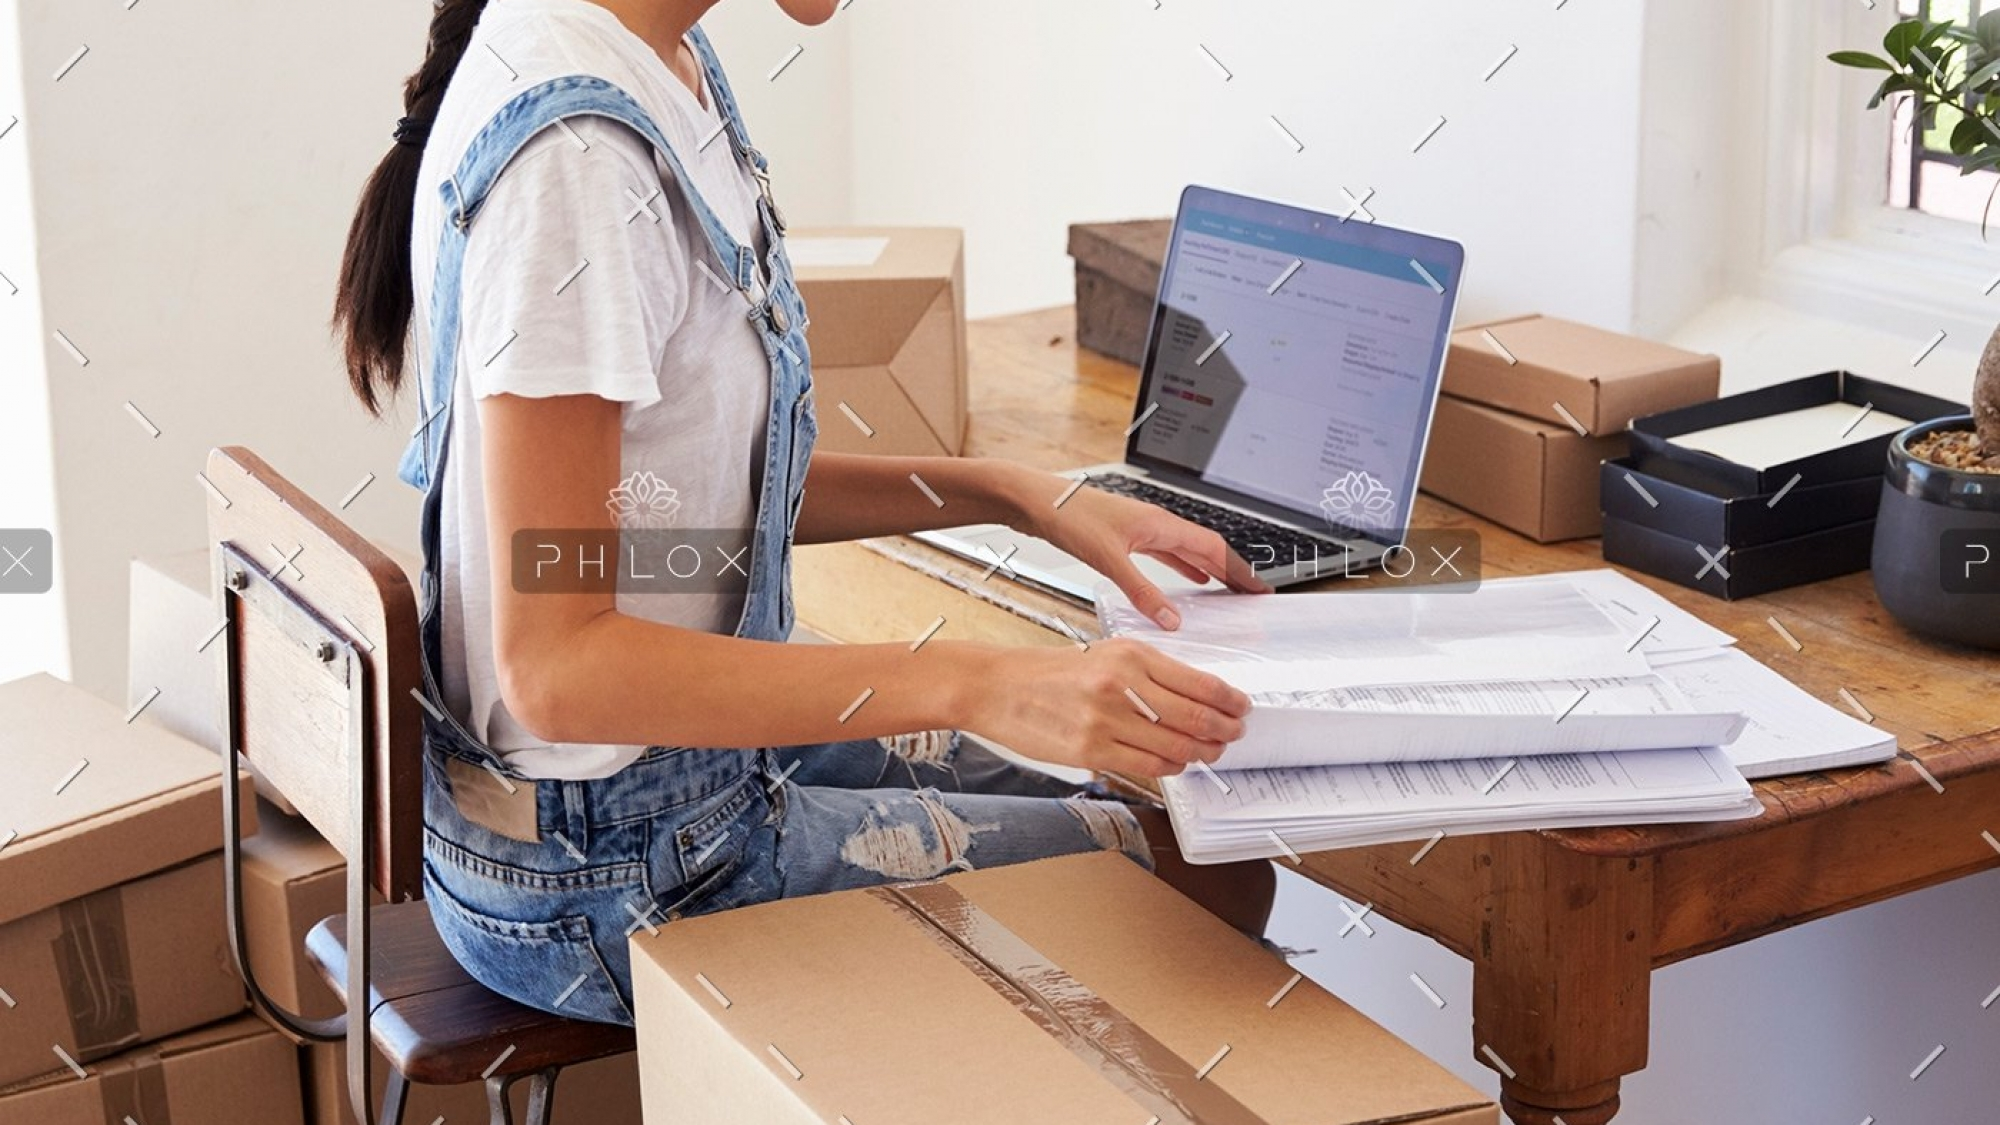 demo-attachment-139-woman-running-business-from-home-working-on-PCZKTN9